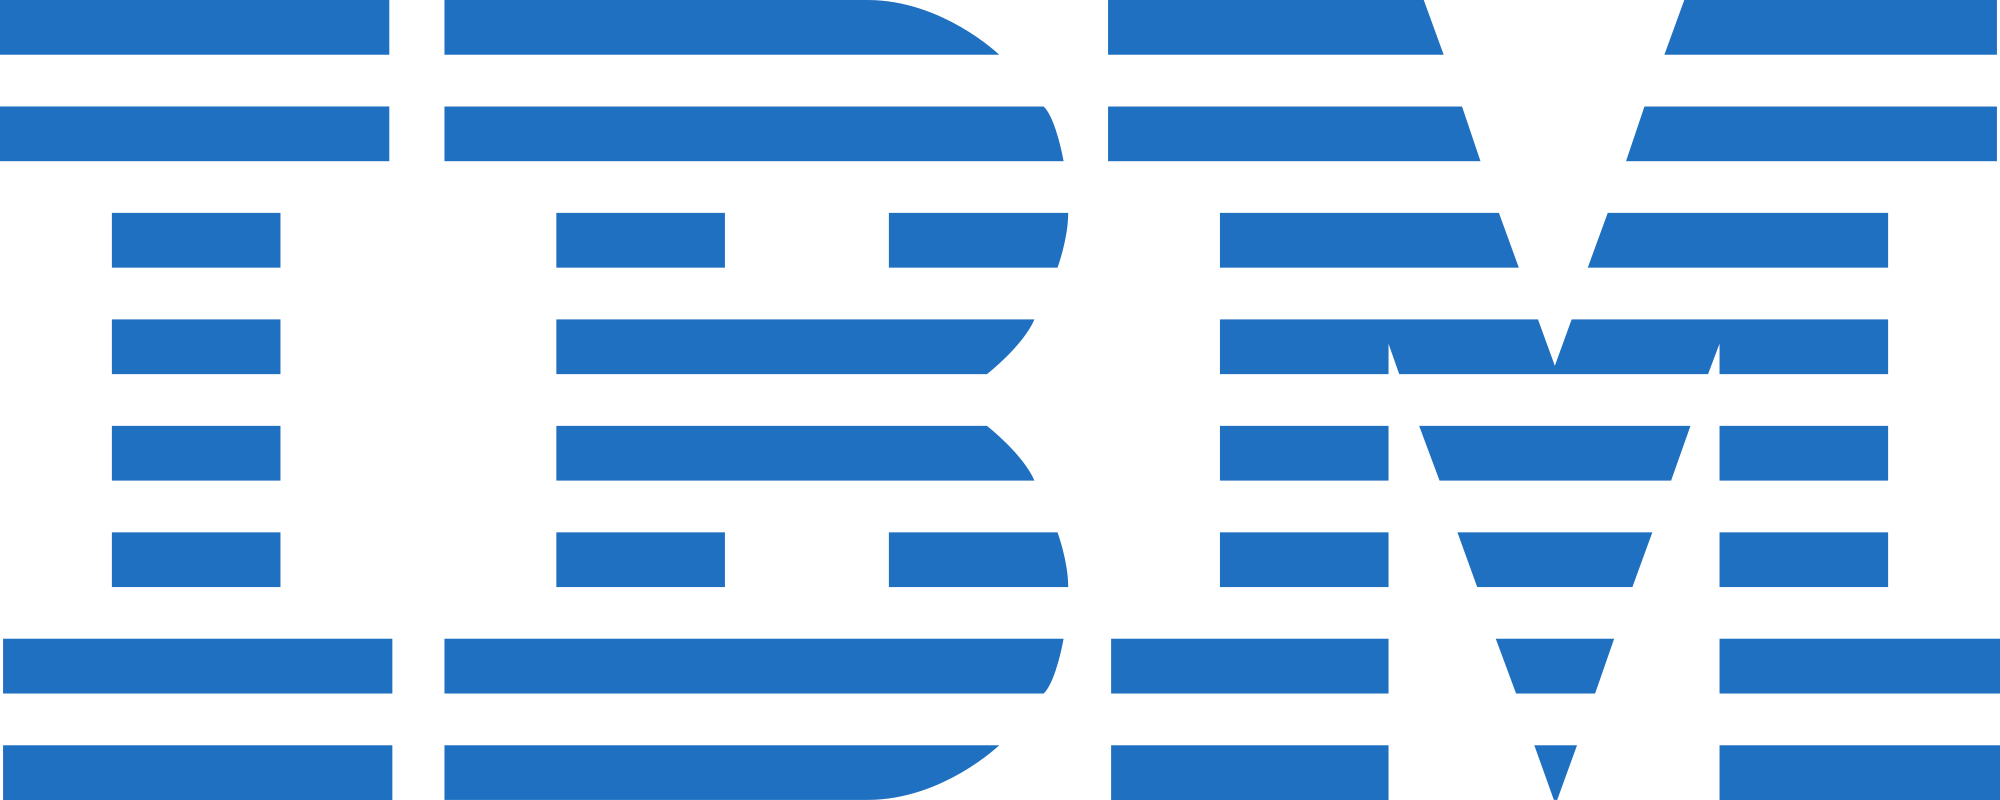 IBM Builds First Universal Quantum Computers for Business and Science